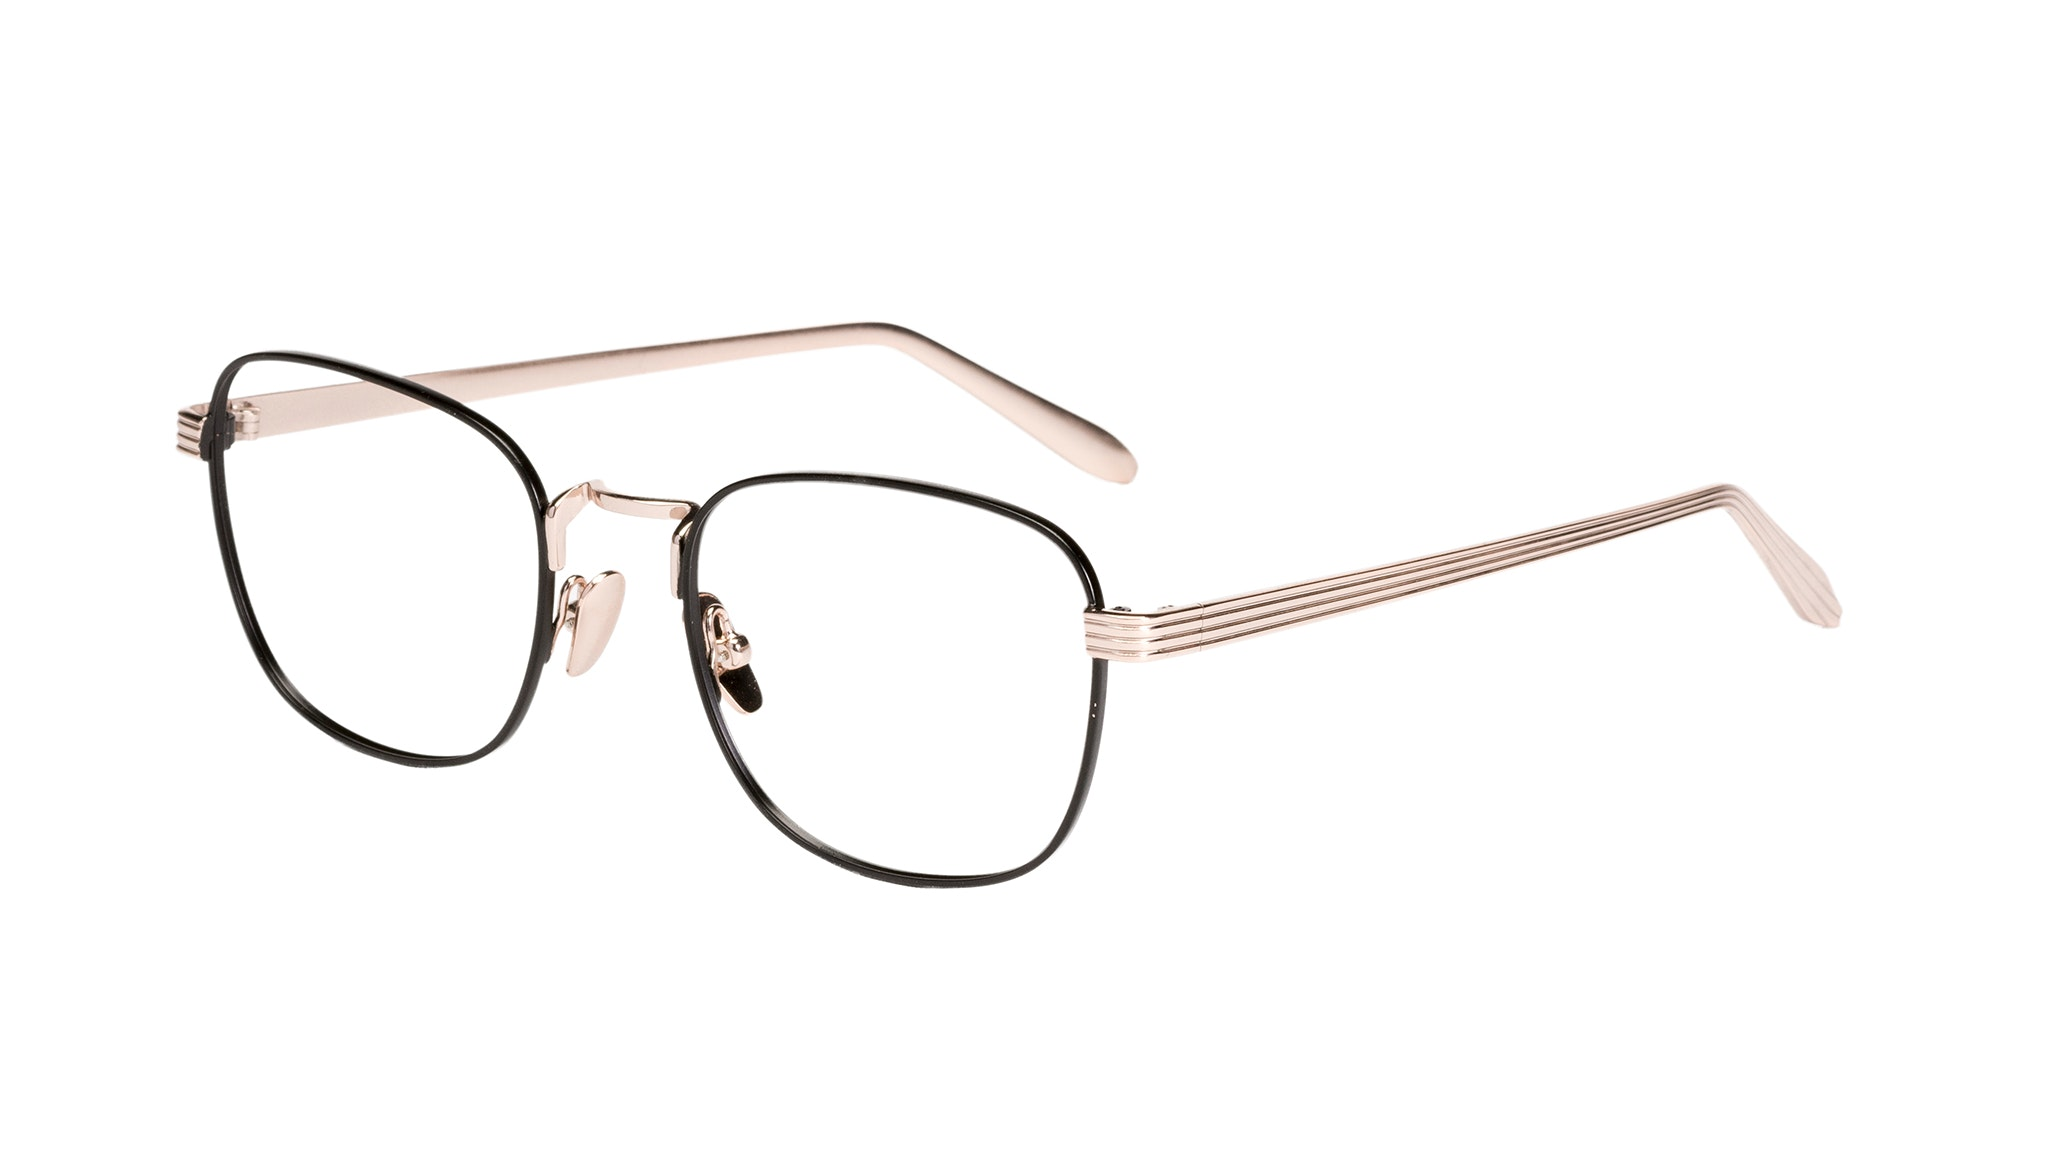 Affordable Fashion Glasses Rectangle Eyeglasses Women Delight Deep Gold Tilt